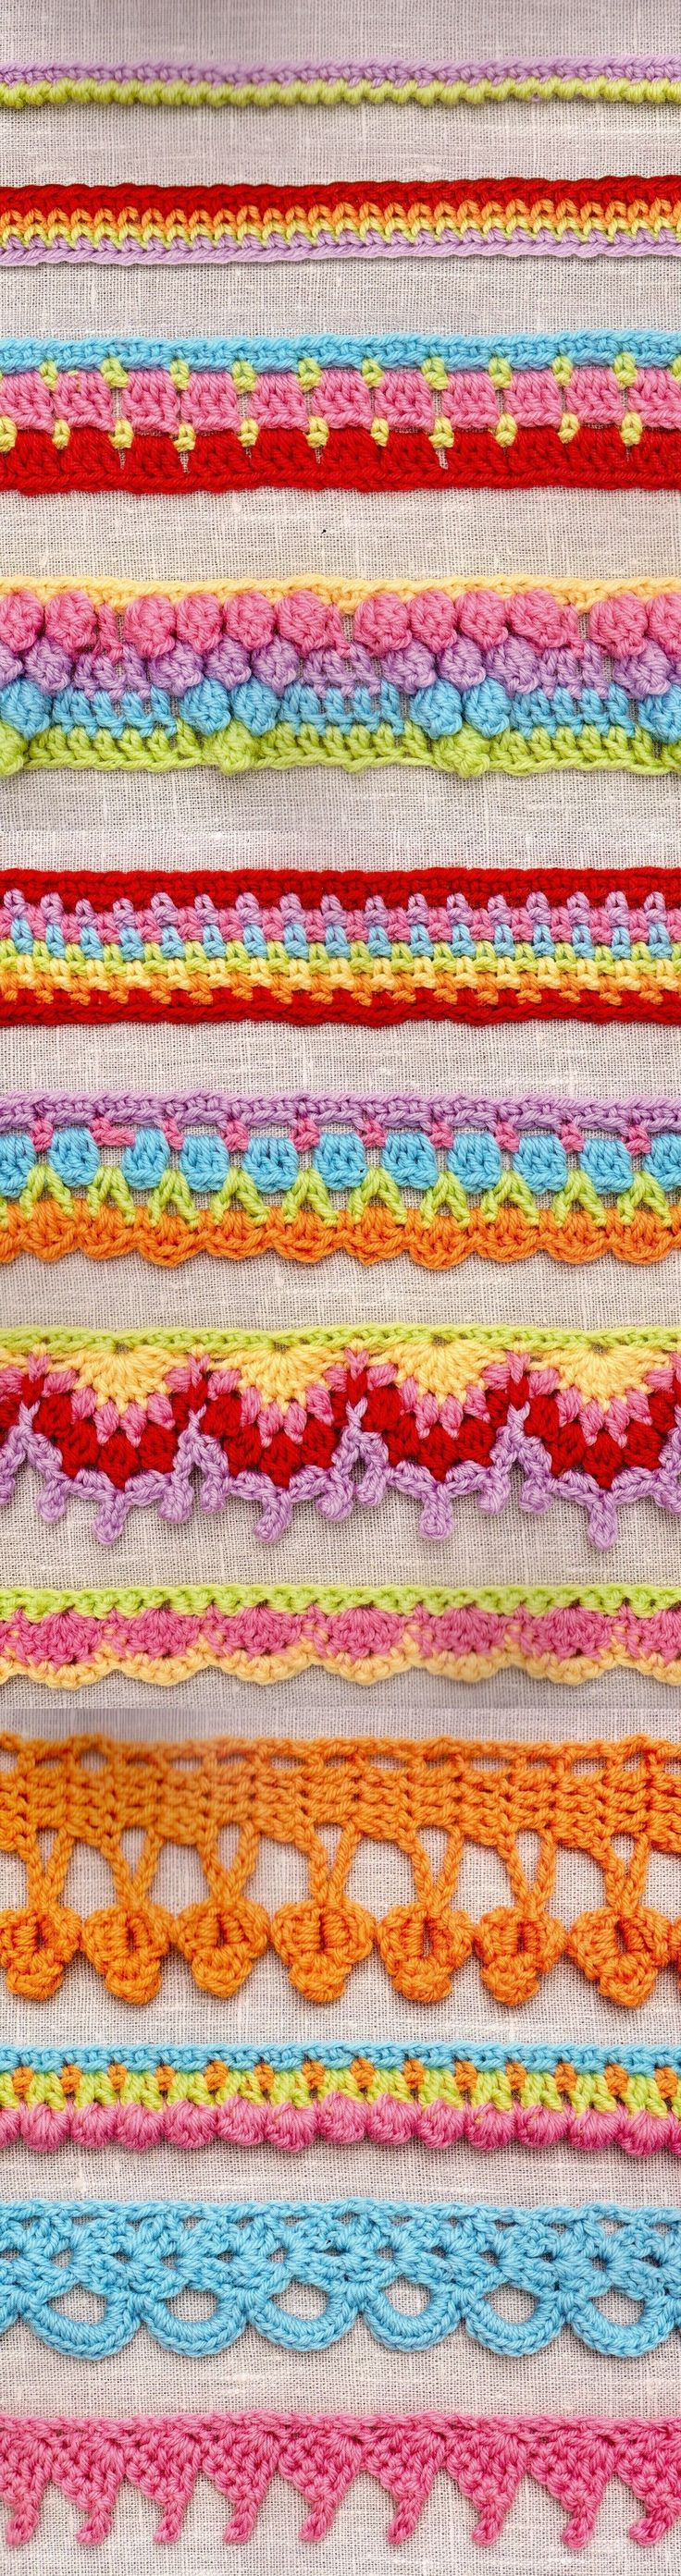 12 Border stitches – 12 Complete Patterns All in one PDF format file for  5.99 US $. What are you going to get: You are going to receive written  guidelines ...